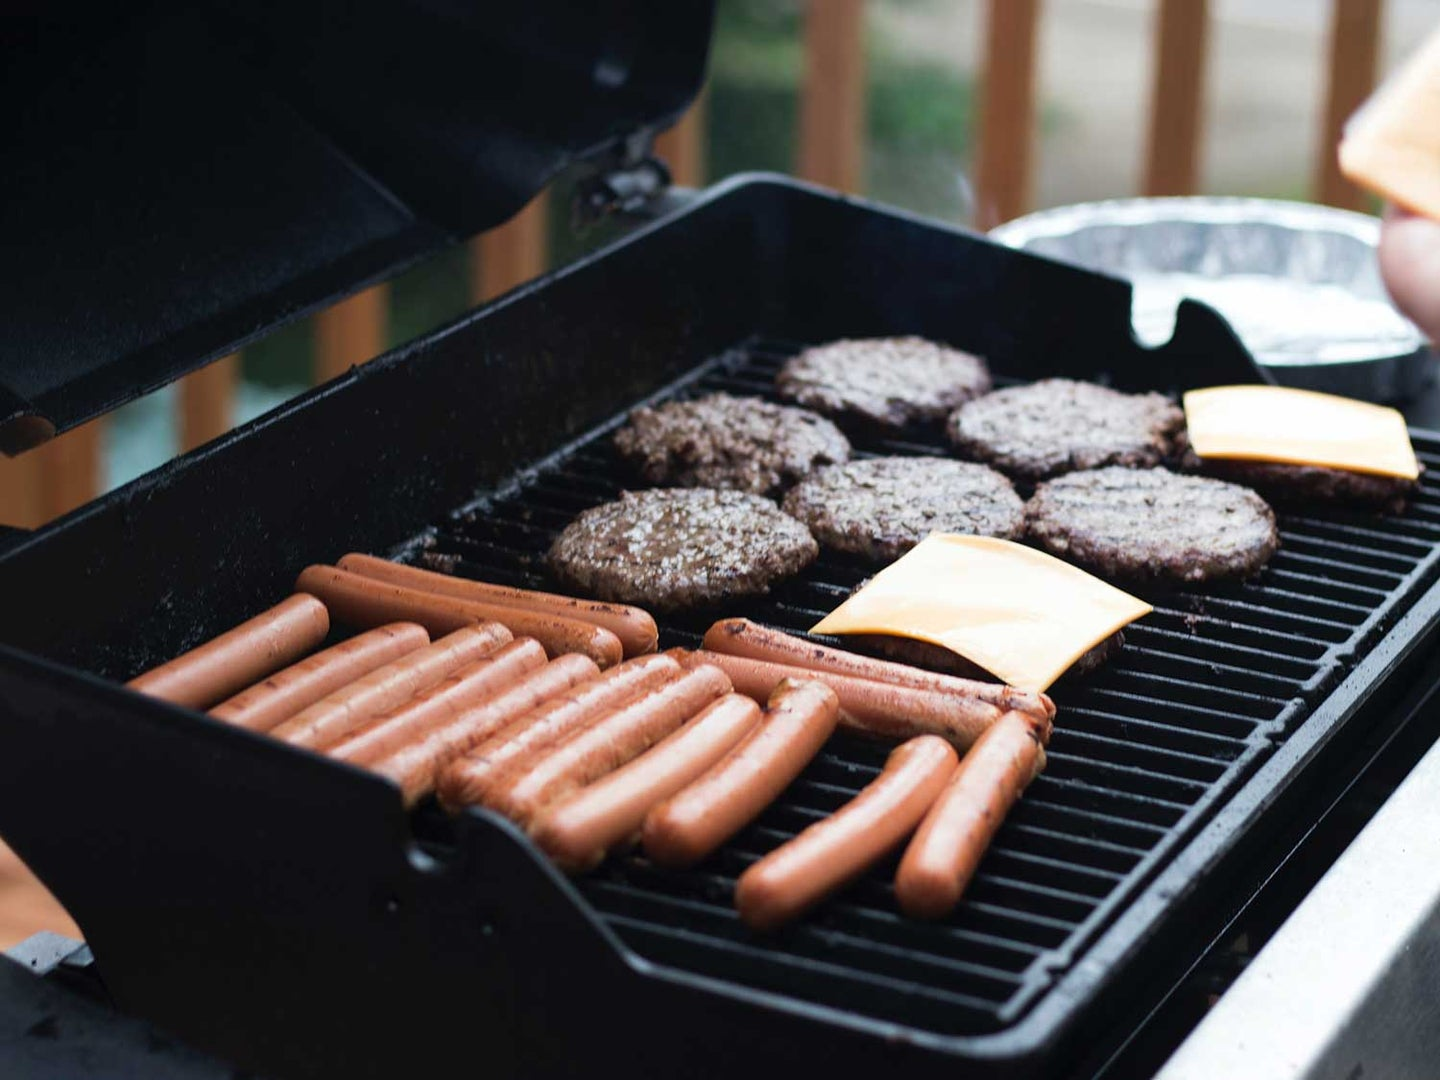 Grilling hamburgers and hot dogs.